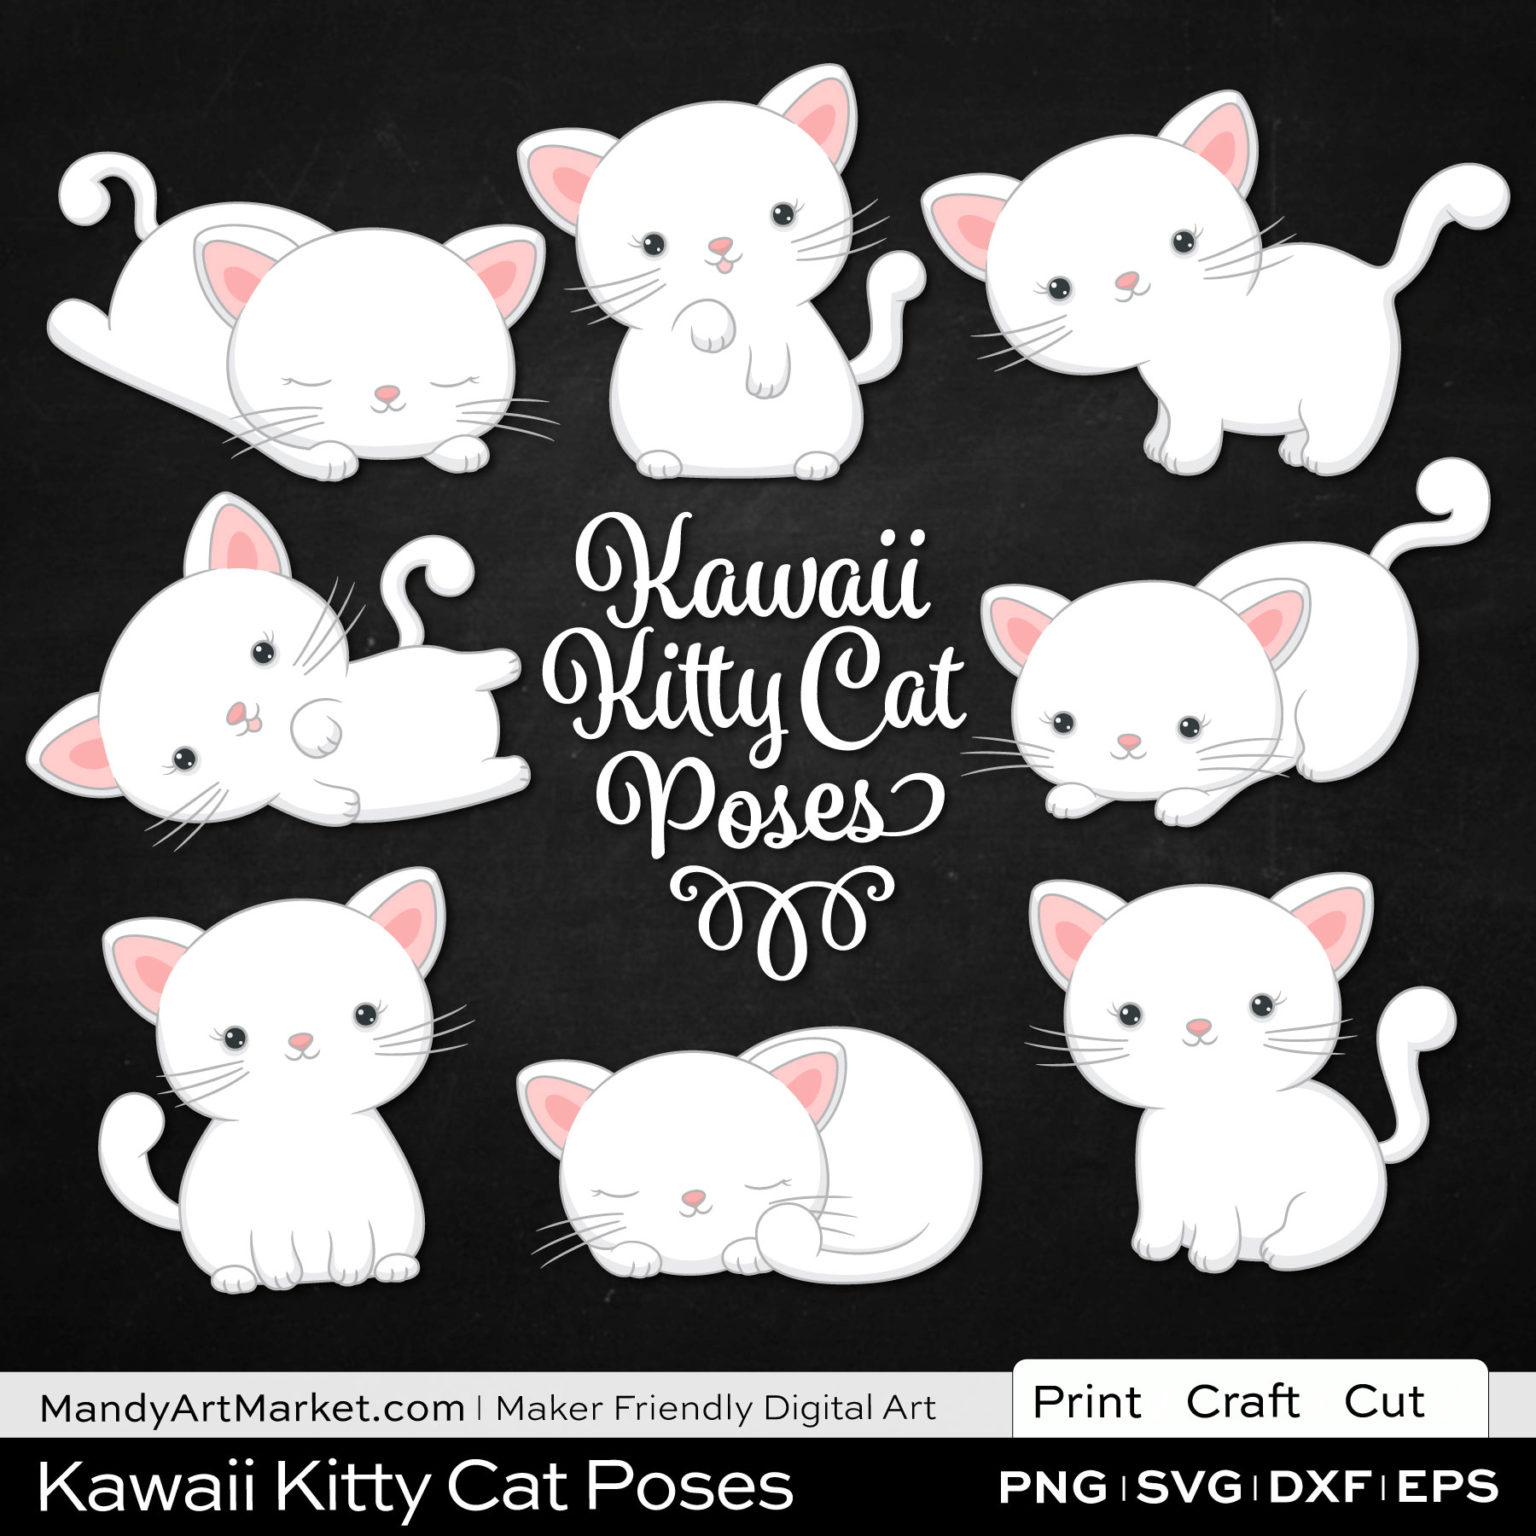 Snow White Kawaii Kitty Cat Poses Clipart on Black Background